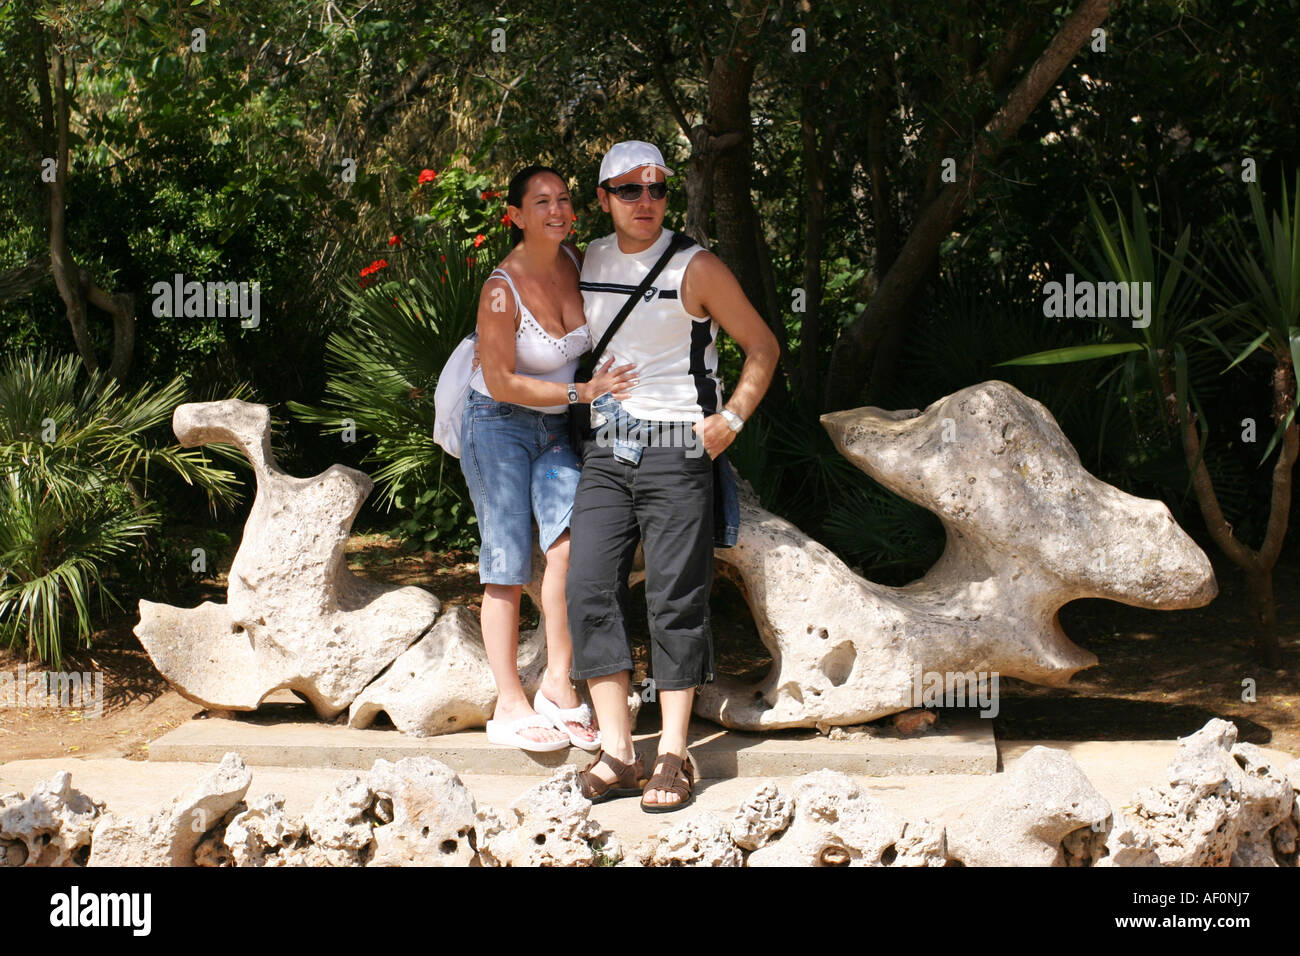 Tourists By The Dragon Stone That Is Symbol Of Cuevas Del Drach Or Coves Drac Caves Mallorca Spain